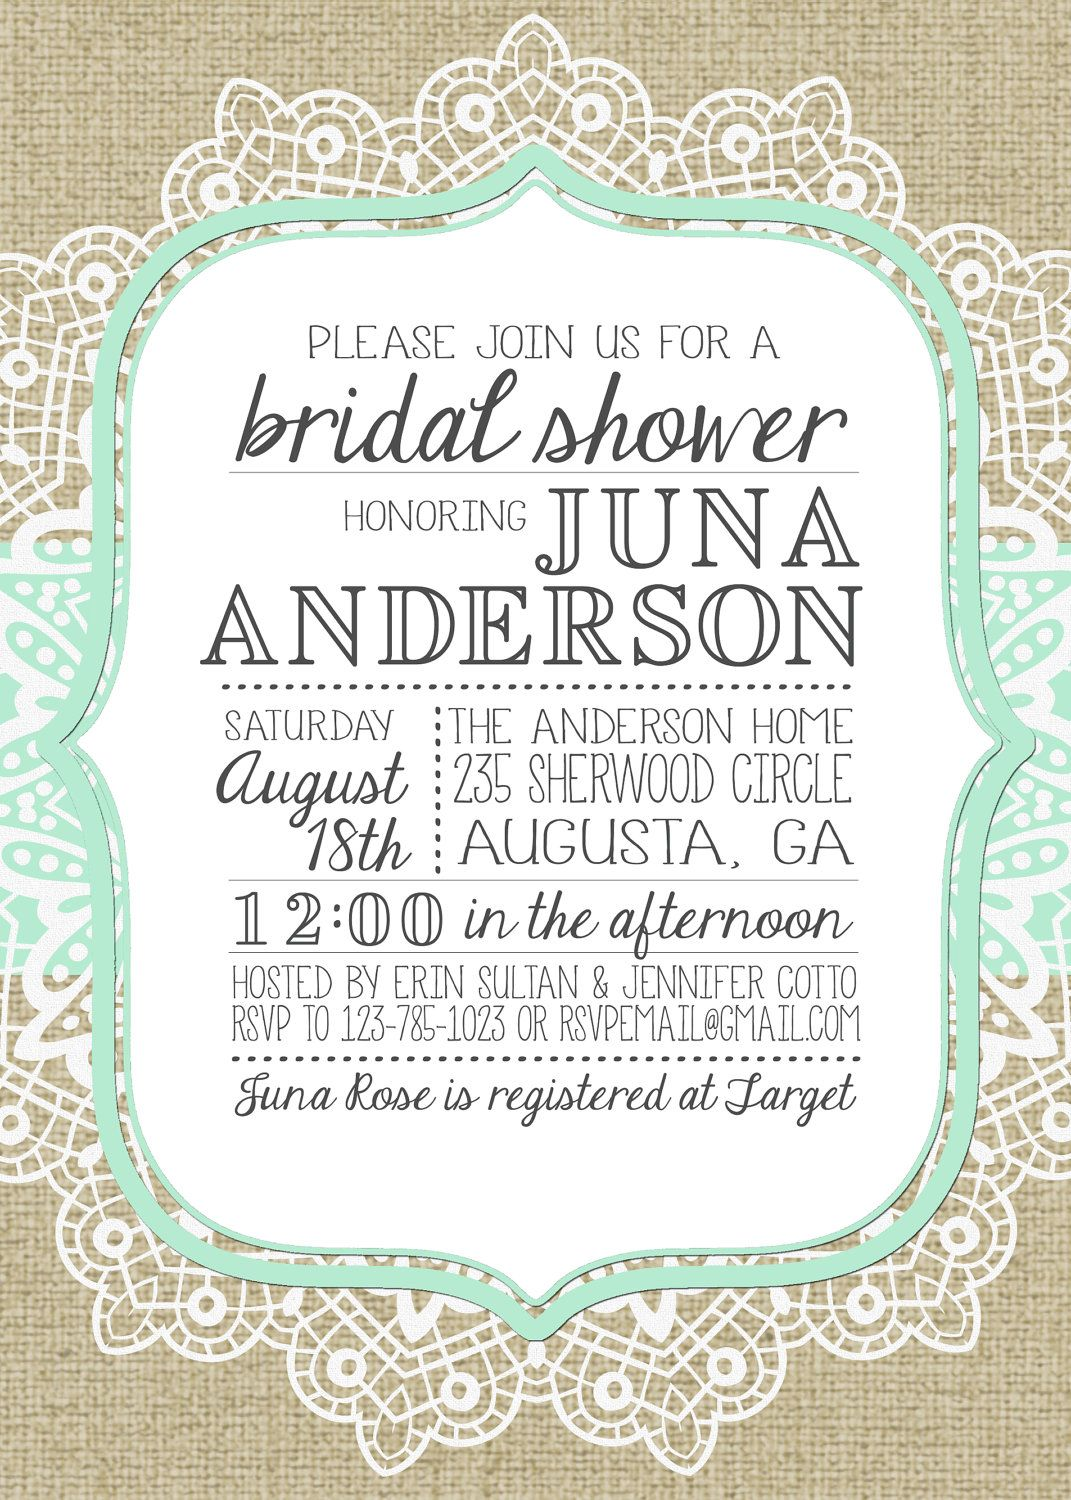 Burlap and lace bridal shower invitationbut for wedding invite burlap and lace bridal shower invitationbut for wedding invite instead stopboris Choice Image